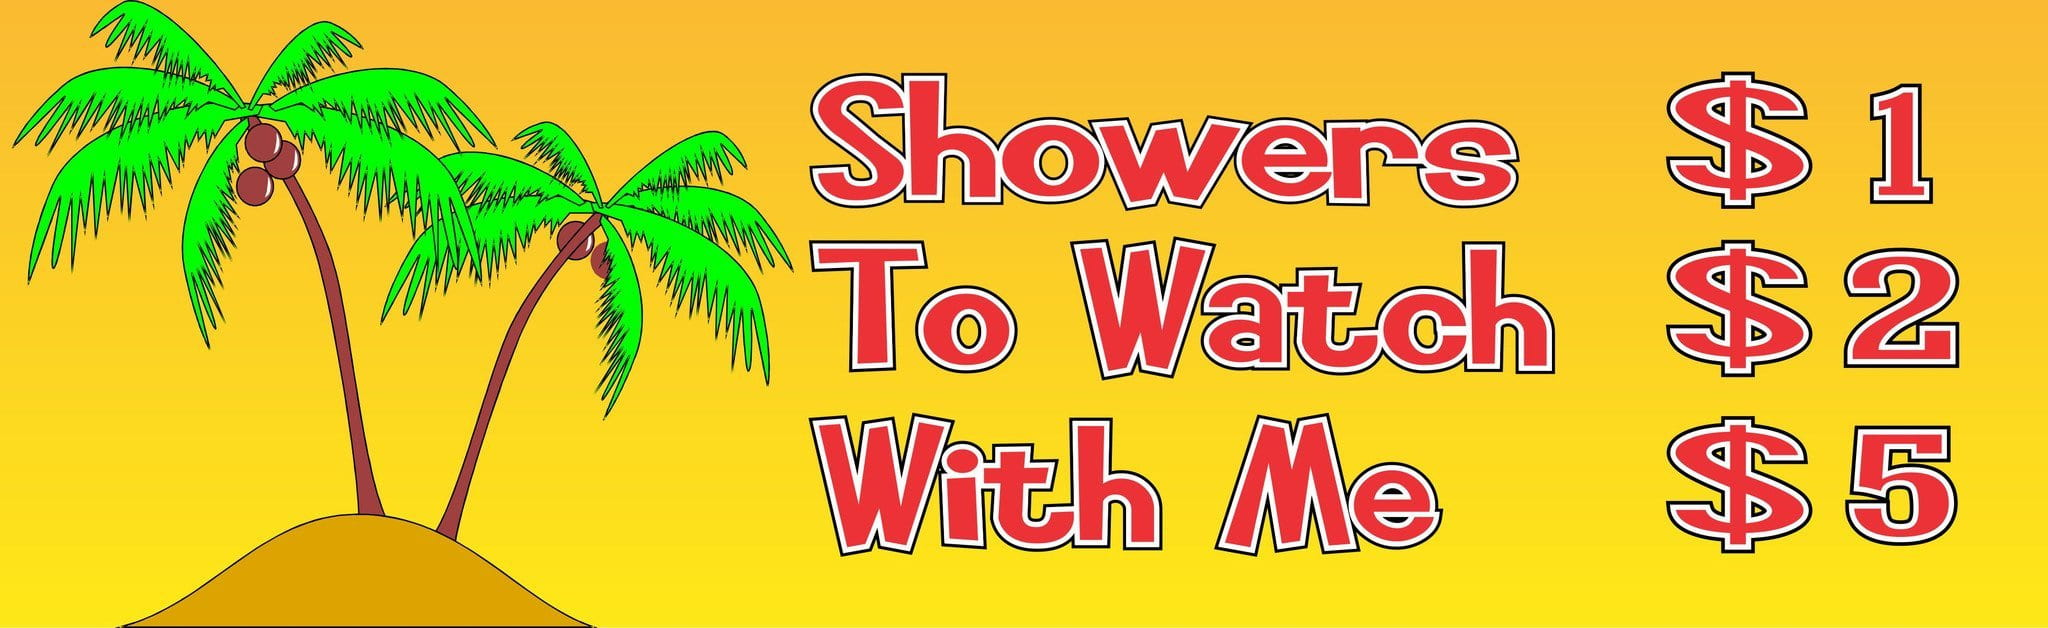 Colorful Swimming Pool Welcome Sign With Funny Price List 1895 Extended Shower Beach Palm Trees Island